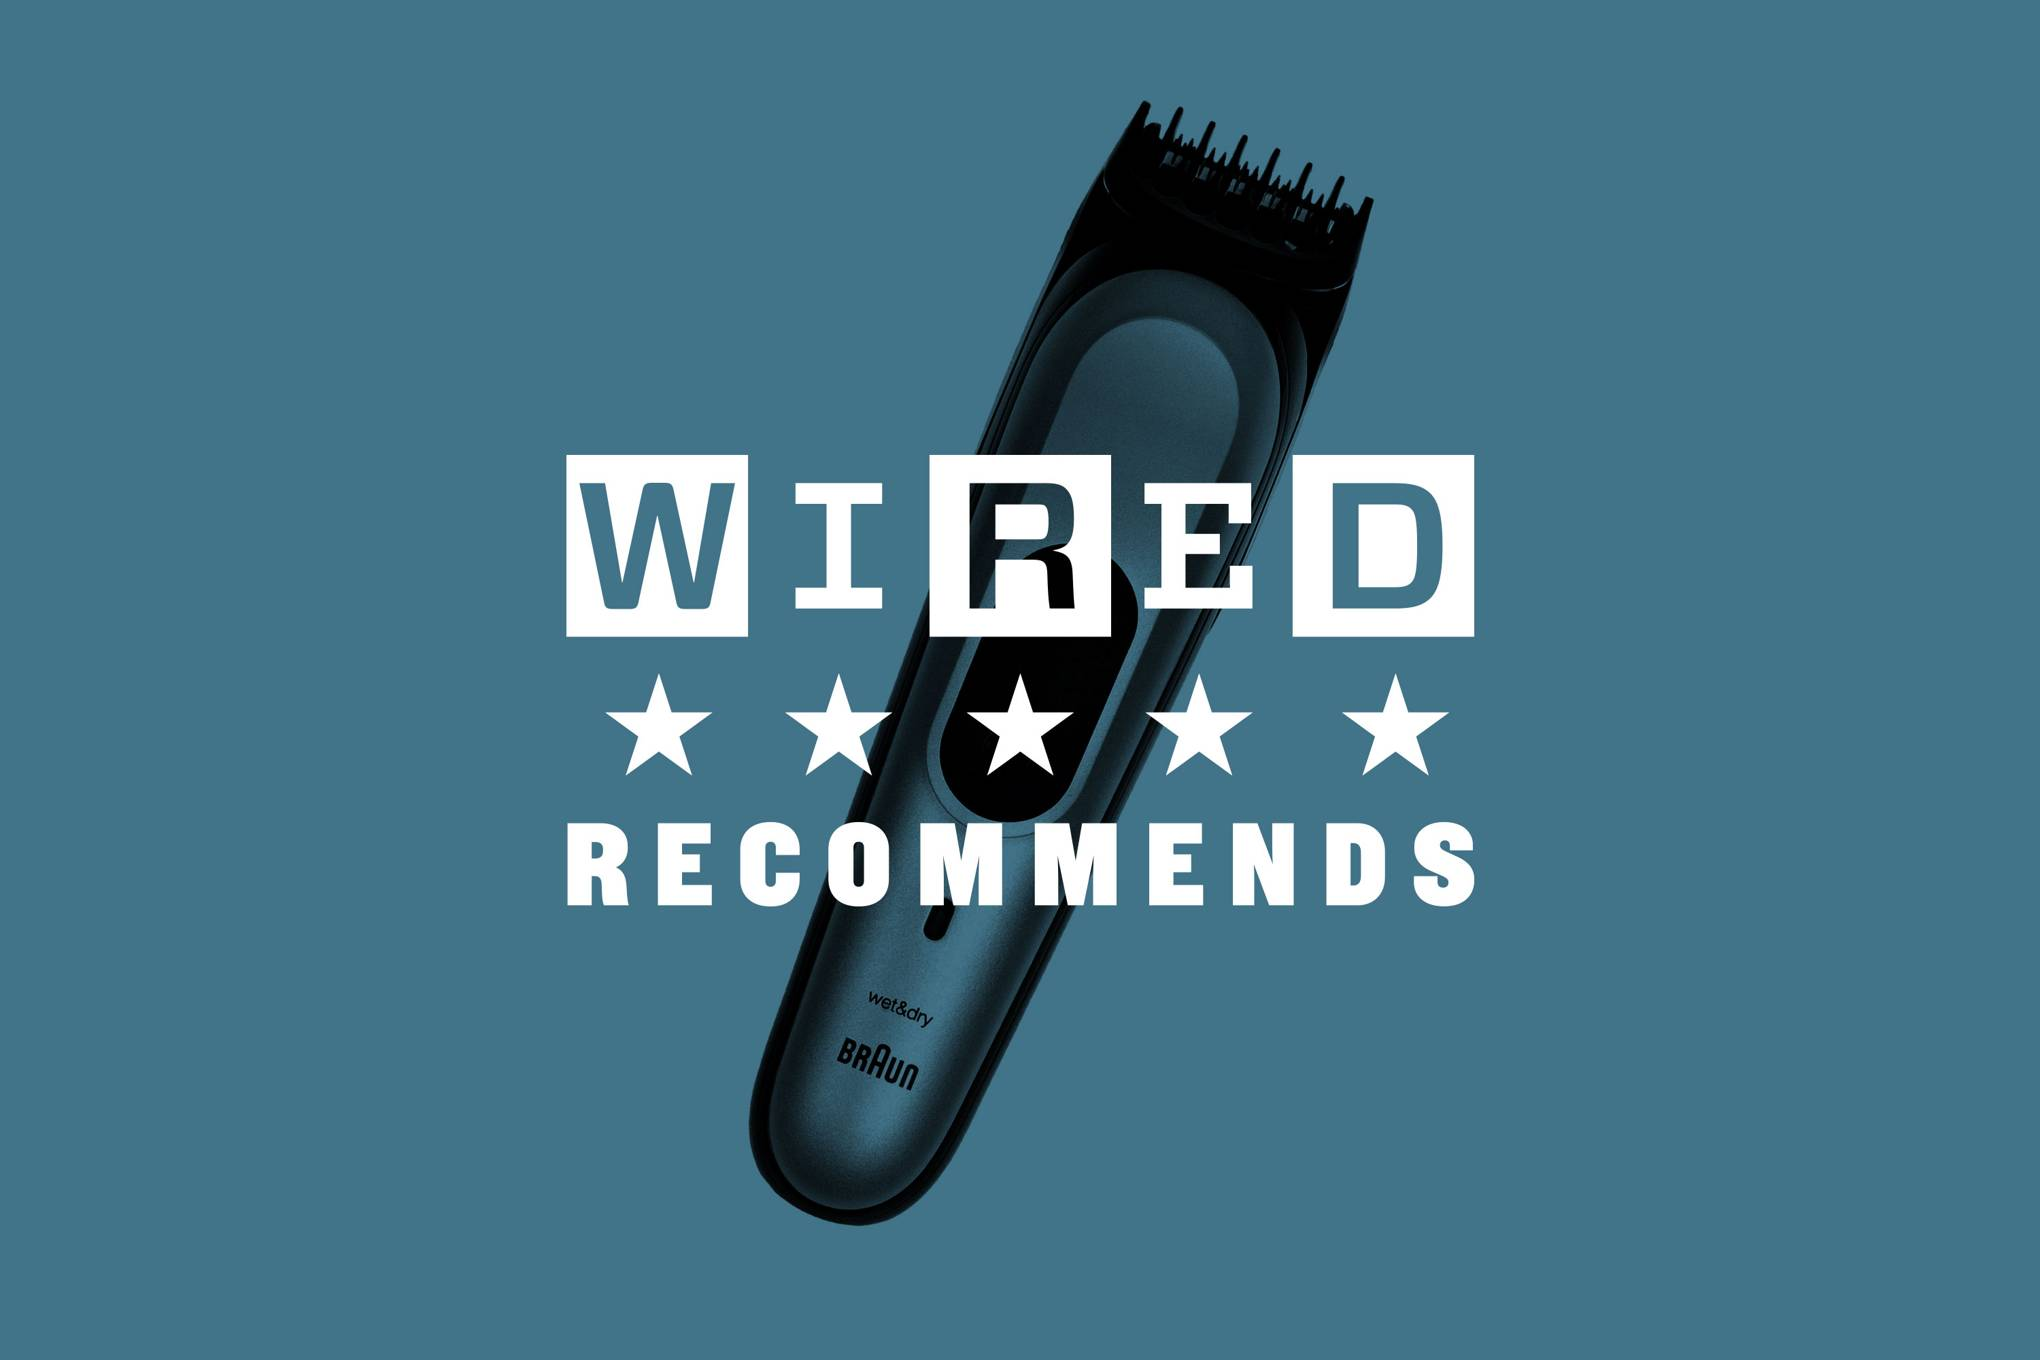 Best Beard Trimmer 2020.The Best Beard Trimmers You Can Buy In 2019 Wired Uk